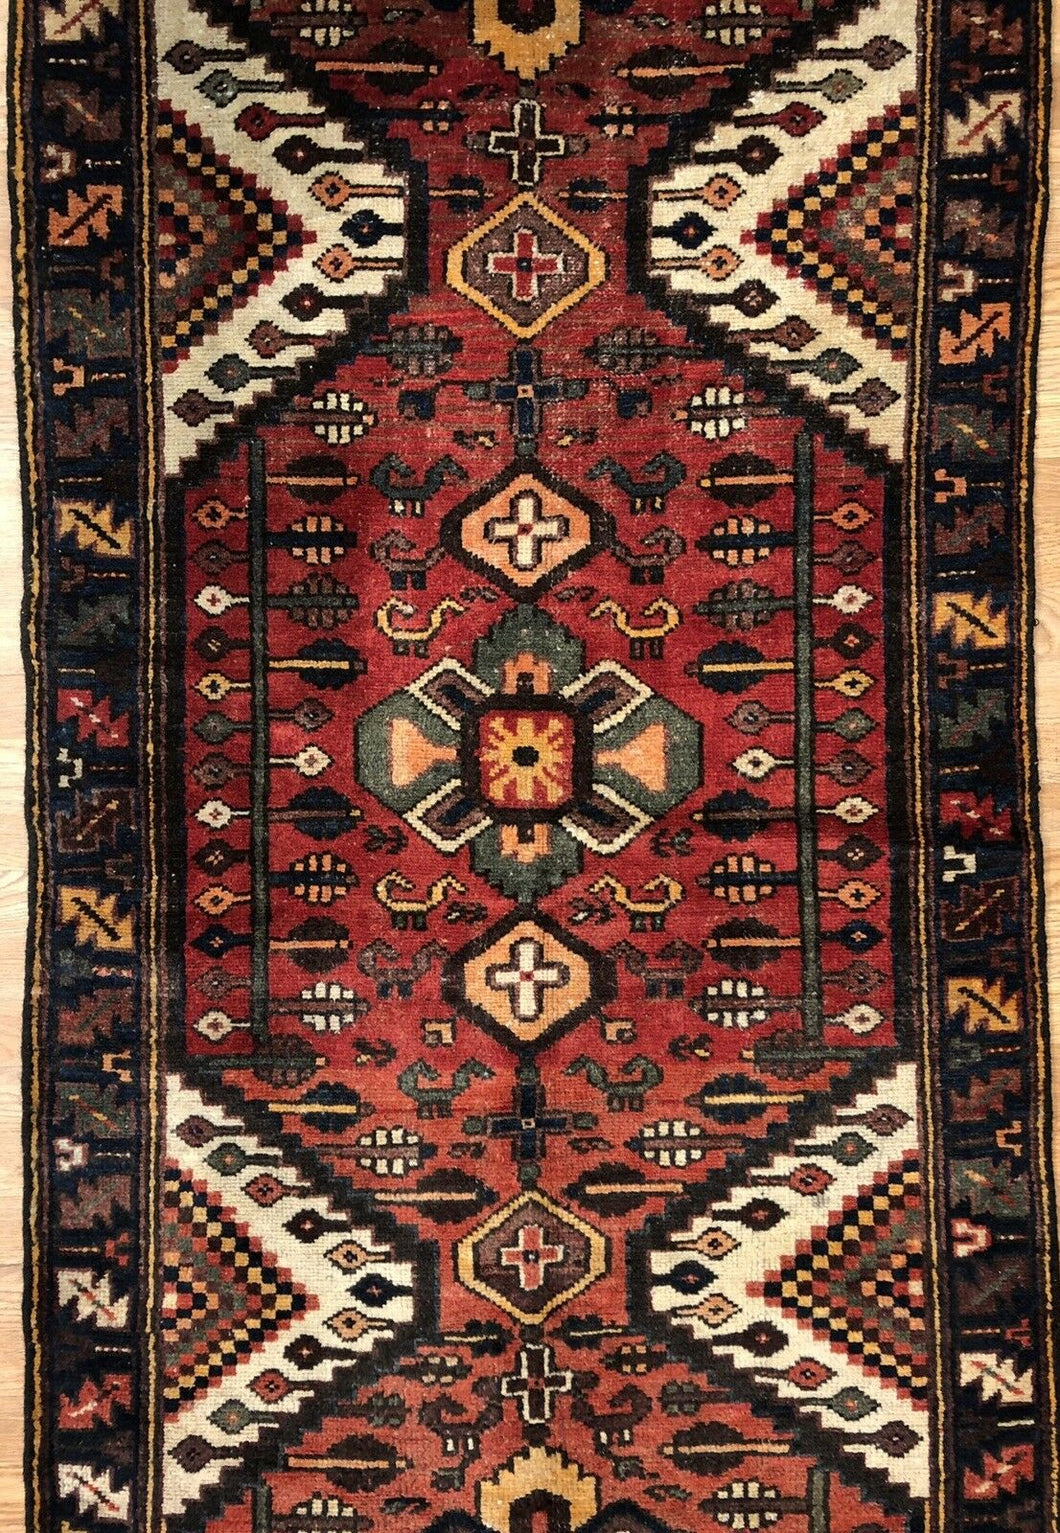 Handsome Hamadan - 1930s Antique Persian Rug - Tribal Runner - 3'6